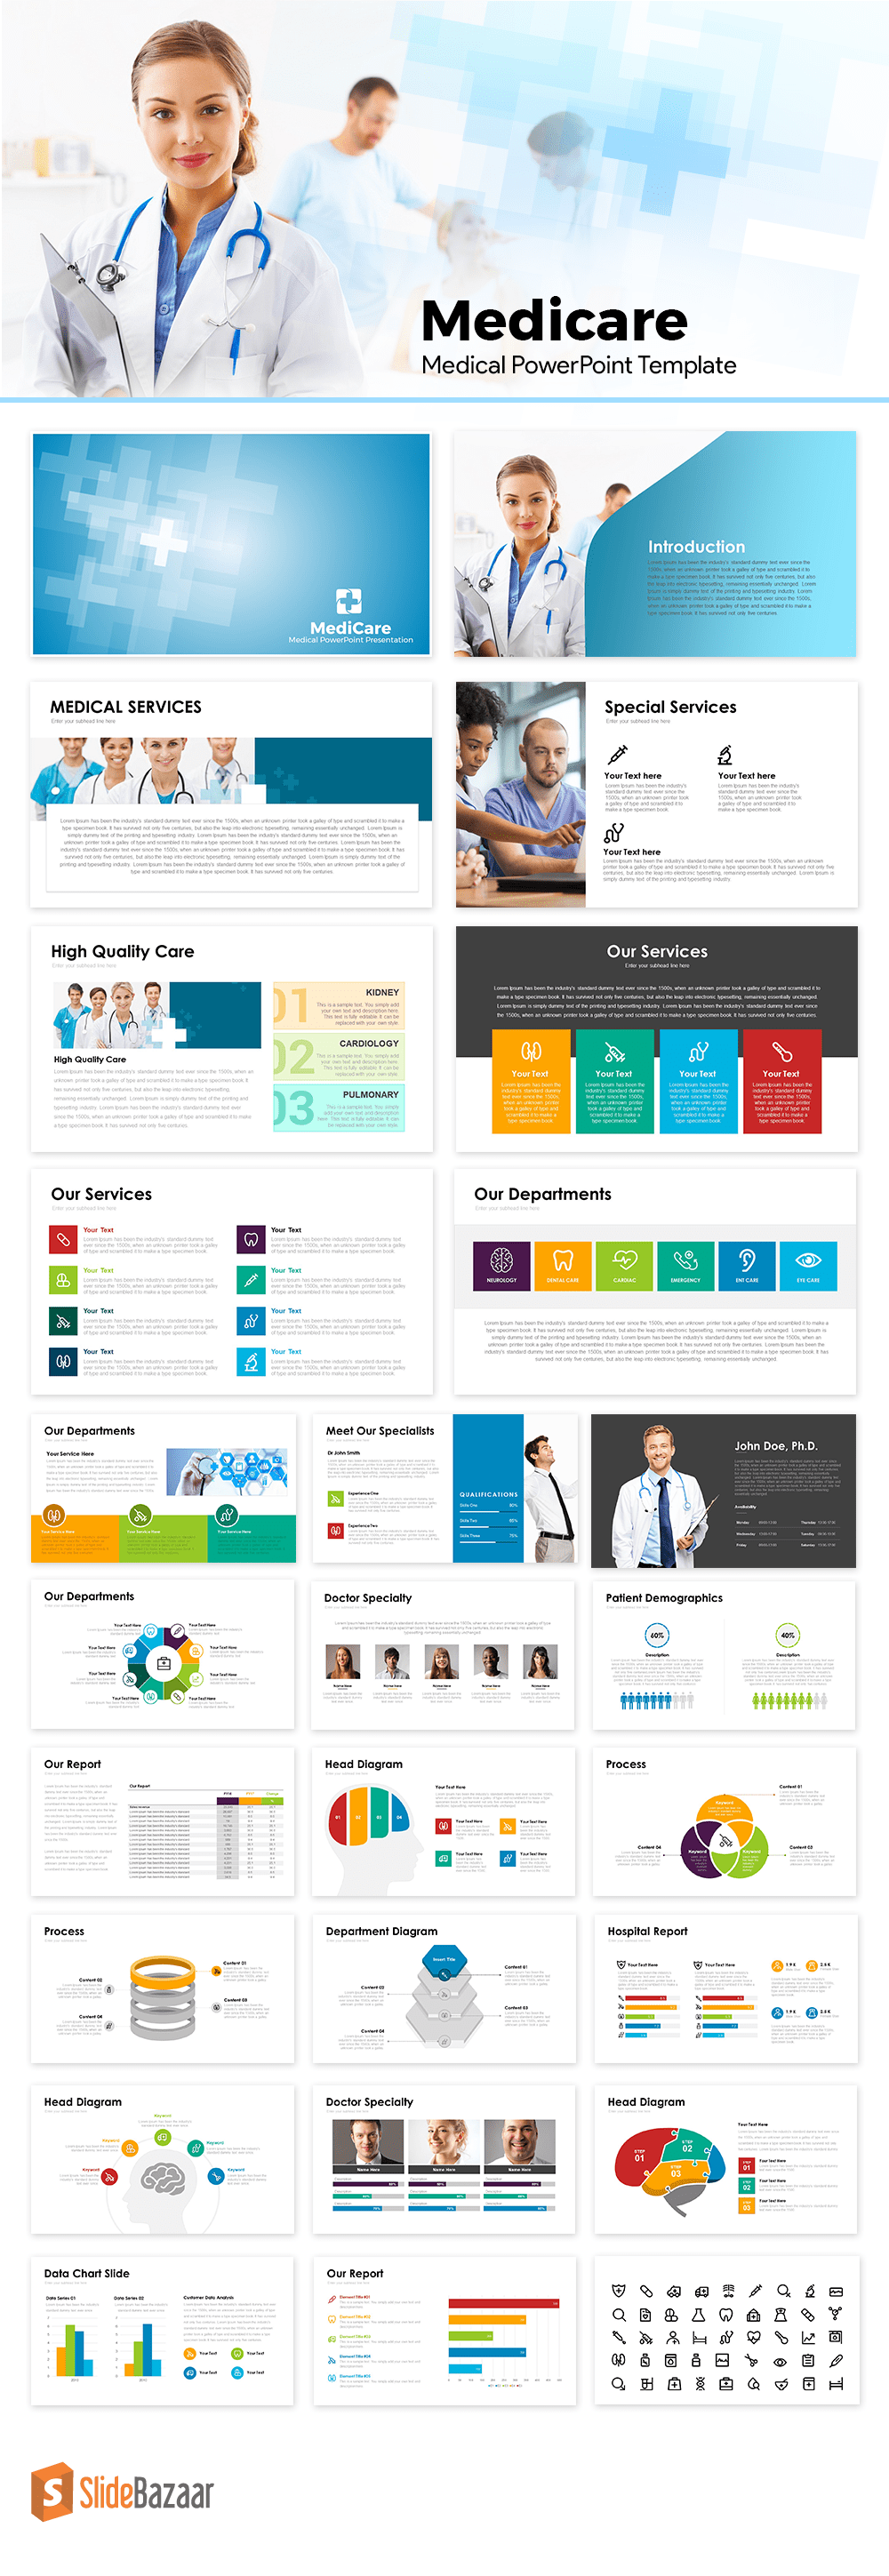 Medicare Medical PowerPoint Templates